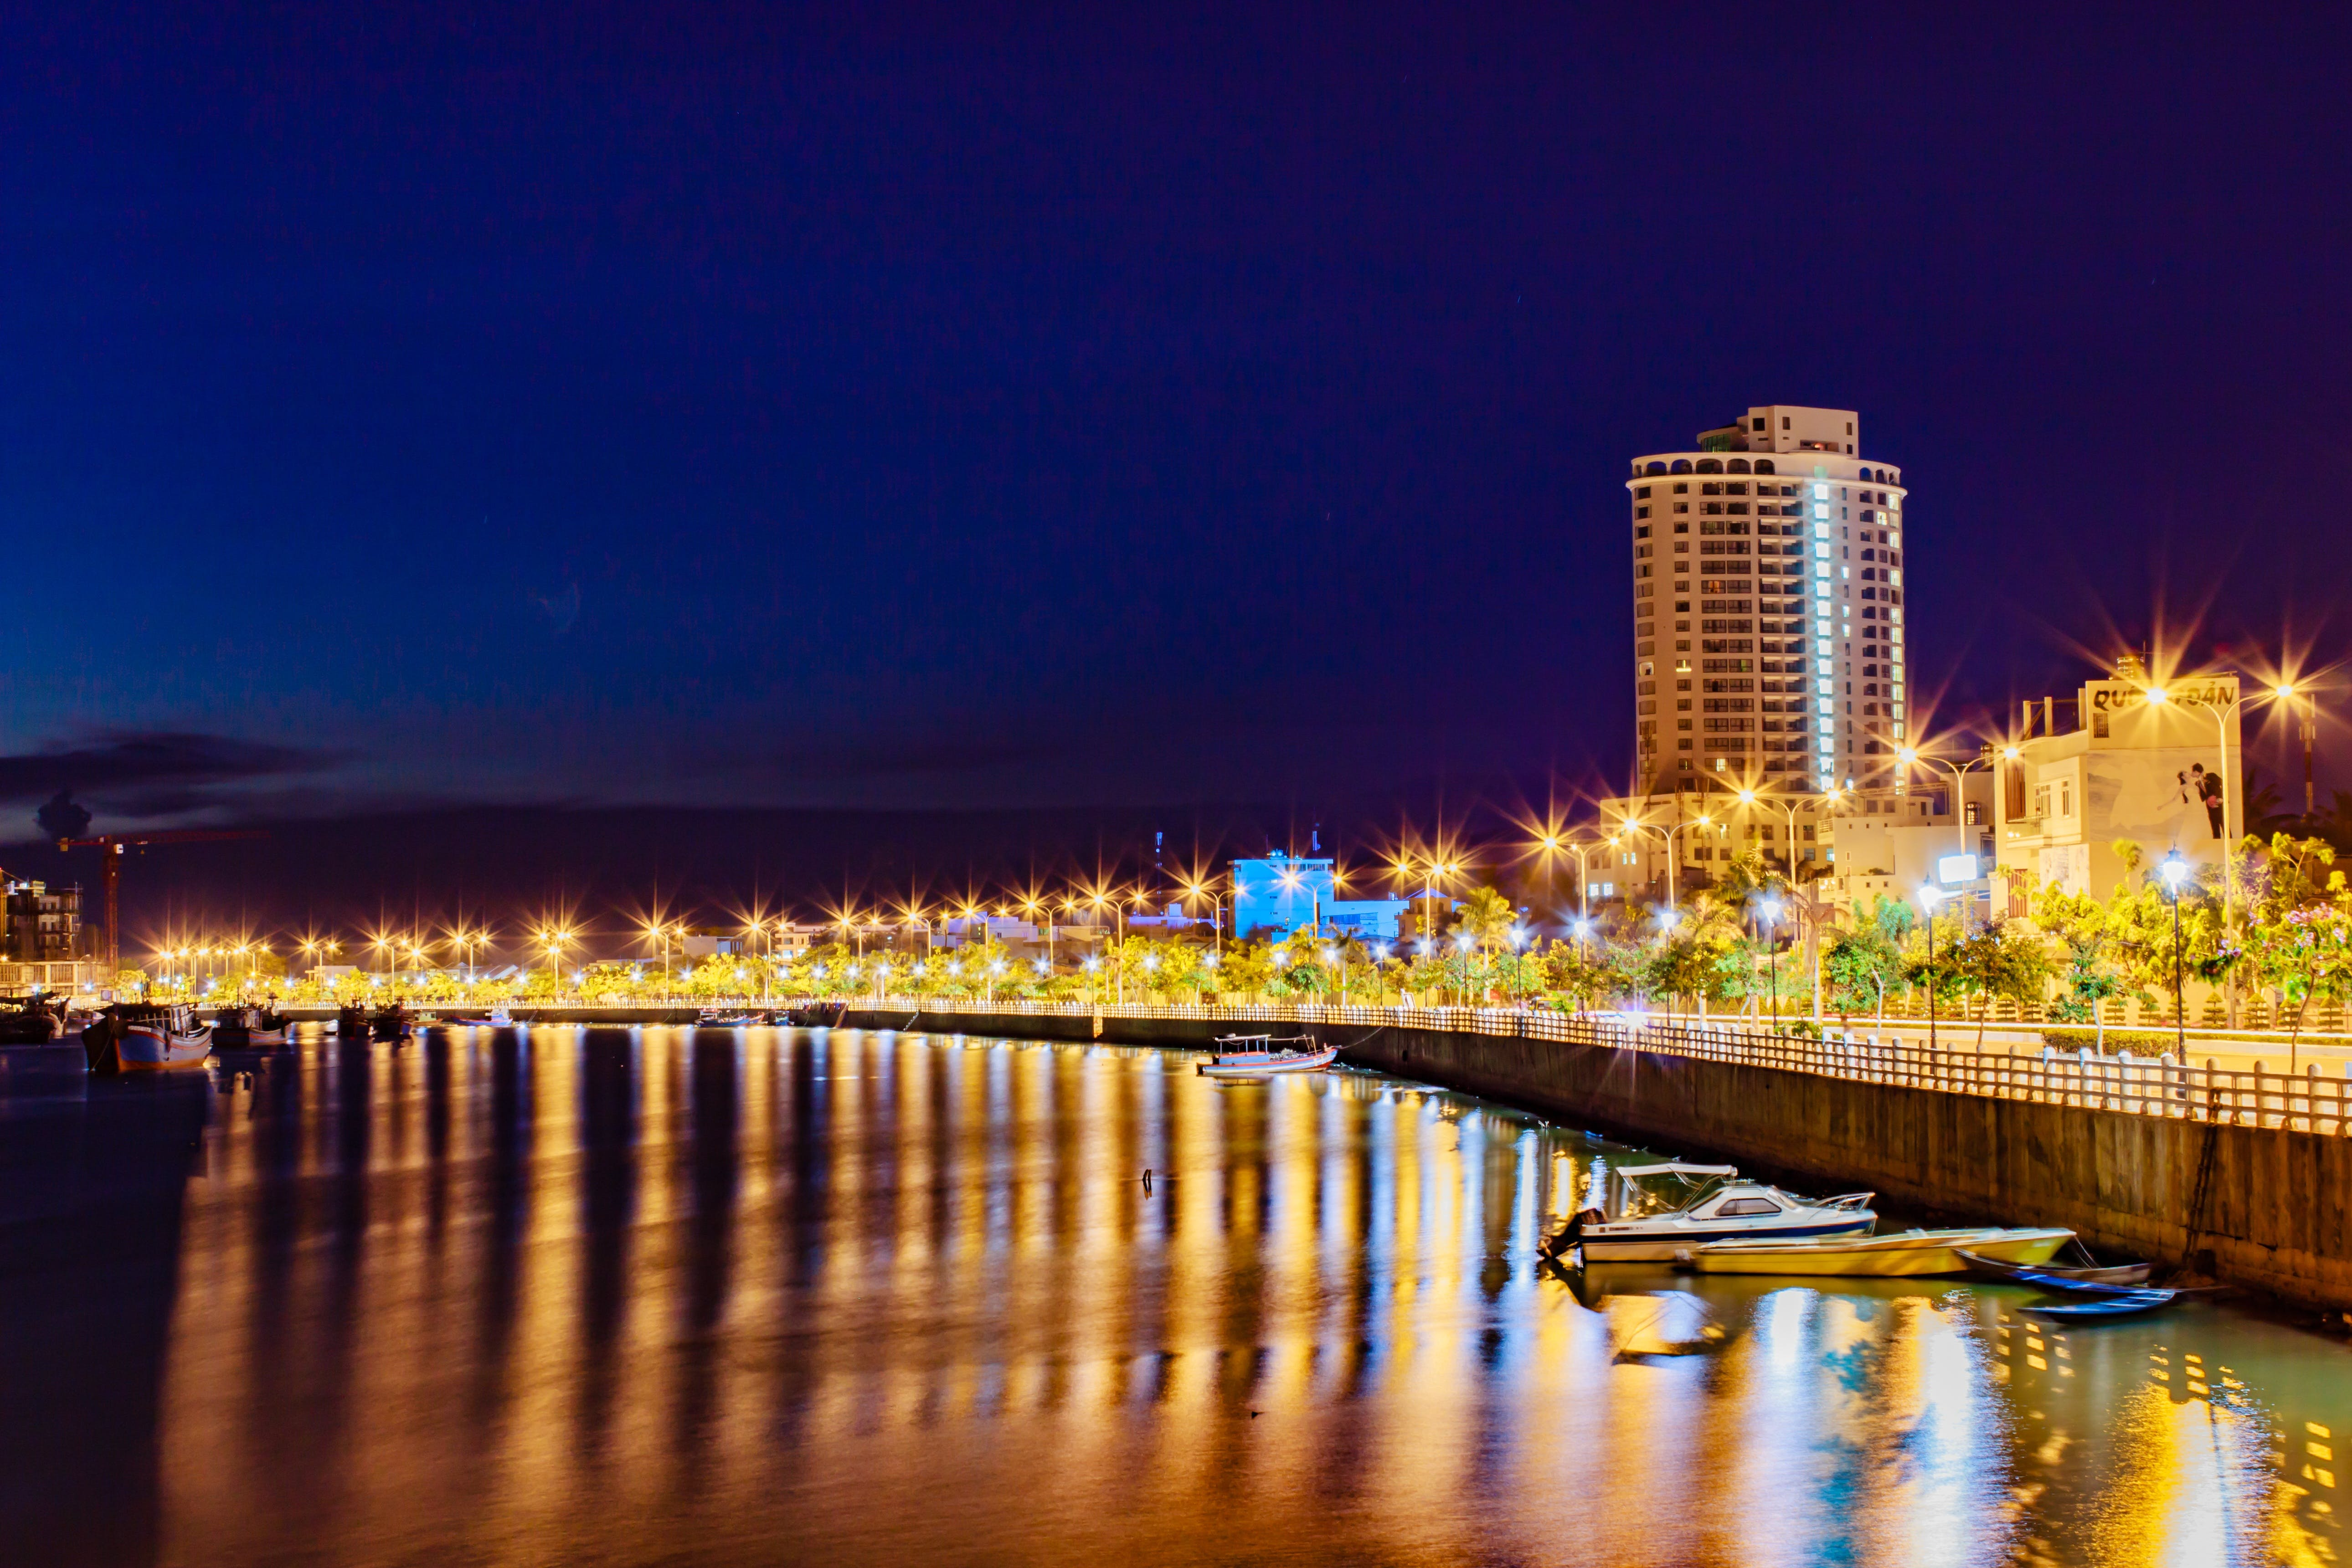 City Beside Body of Water at Night With Lights Landscape Photography